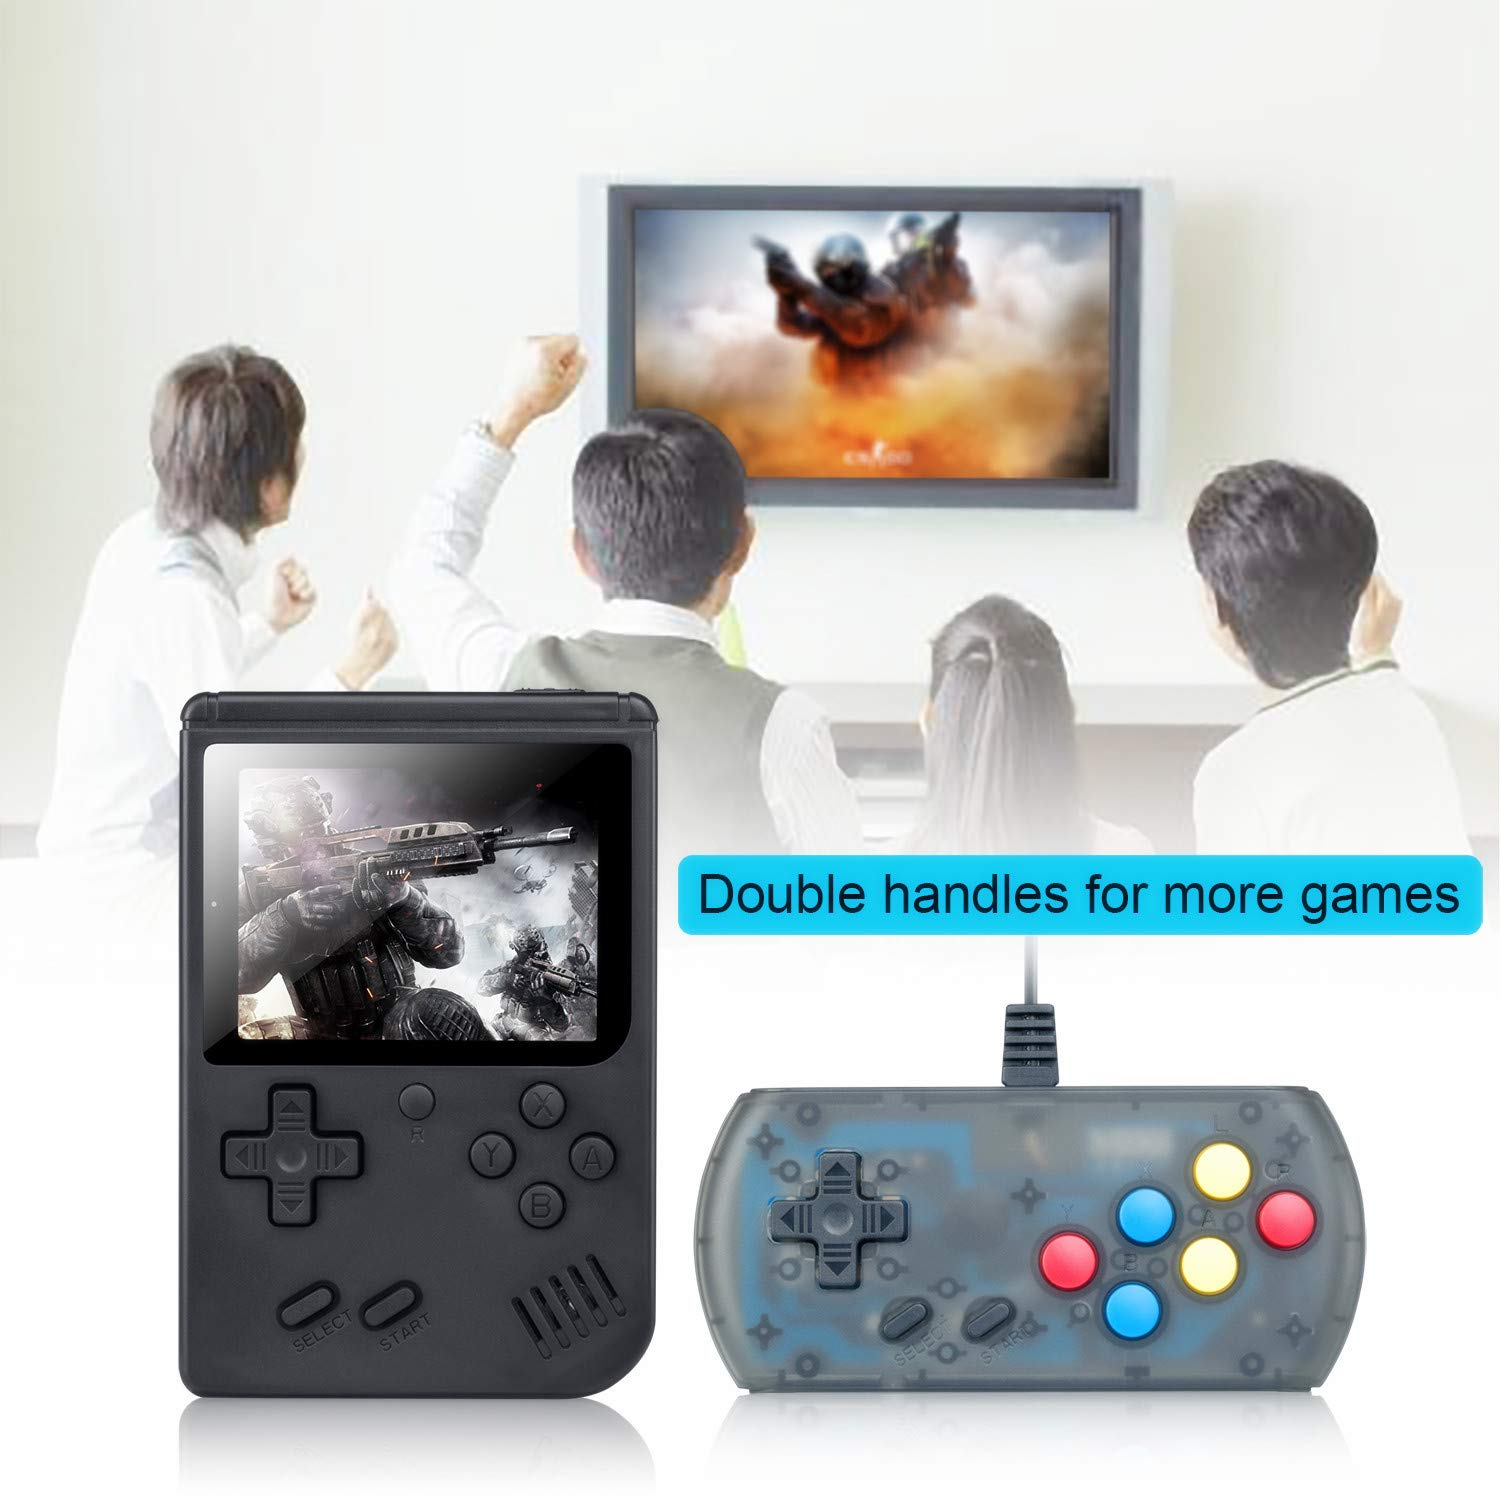 weikin Handheld Game Console, 168 Classic Games 3 Inch LCD Screen Portable Retro Video Game Console Support for Connecting TV and Two Players, Good Gifts for Kids and Adult. by weikin (Image #9)